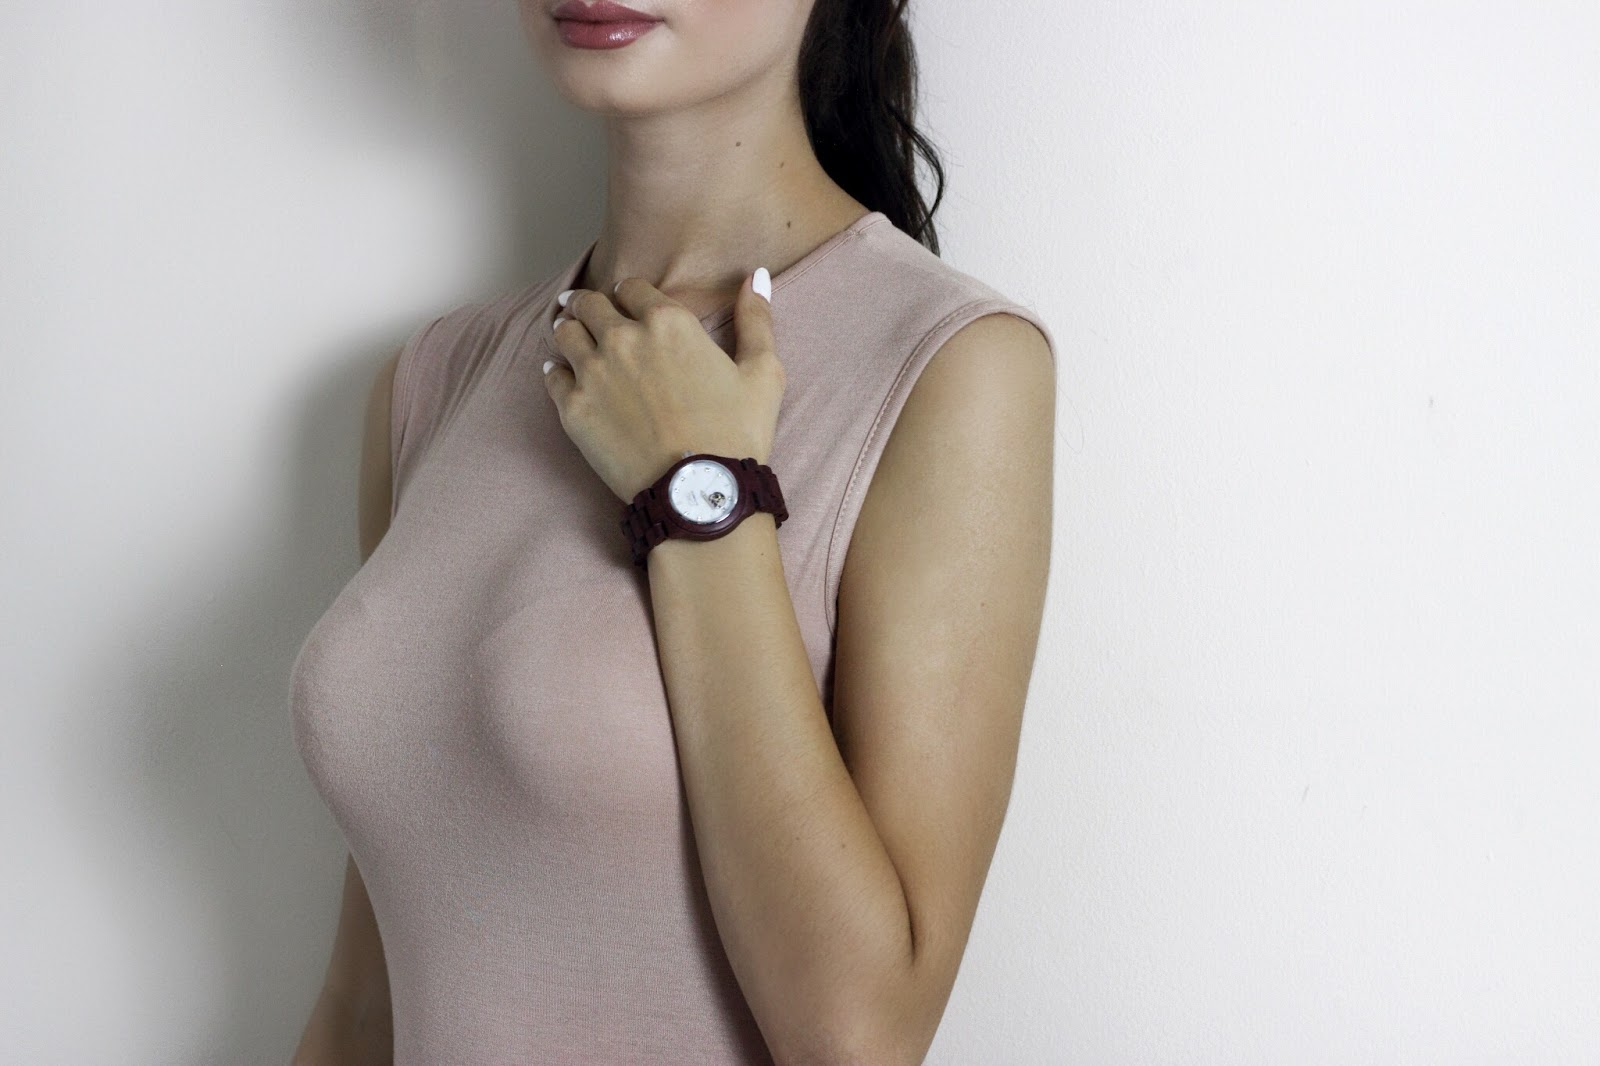 anasofiachic, wood watch, watch review, jord, fashion blog, beauty blog, lifestyle blog, makeup blog, british blog, bblogger, natural watch, organic watch, natural materials, review, jord, jord watches